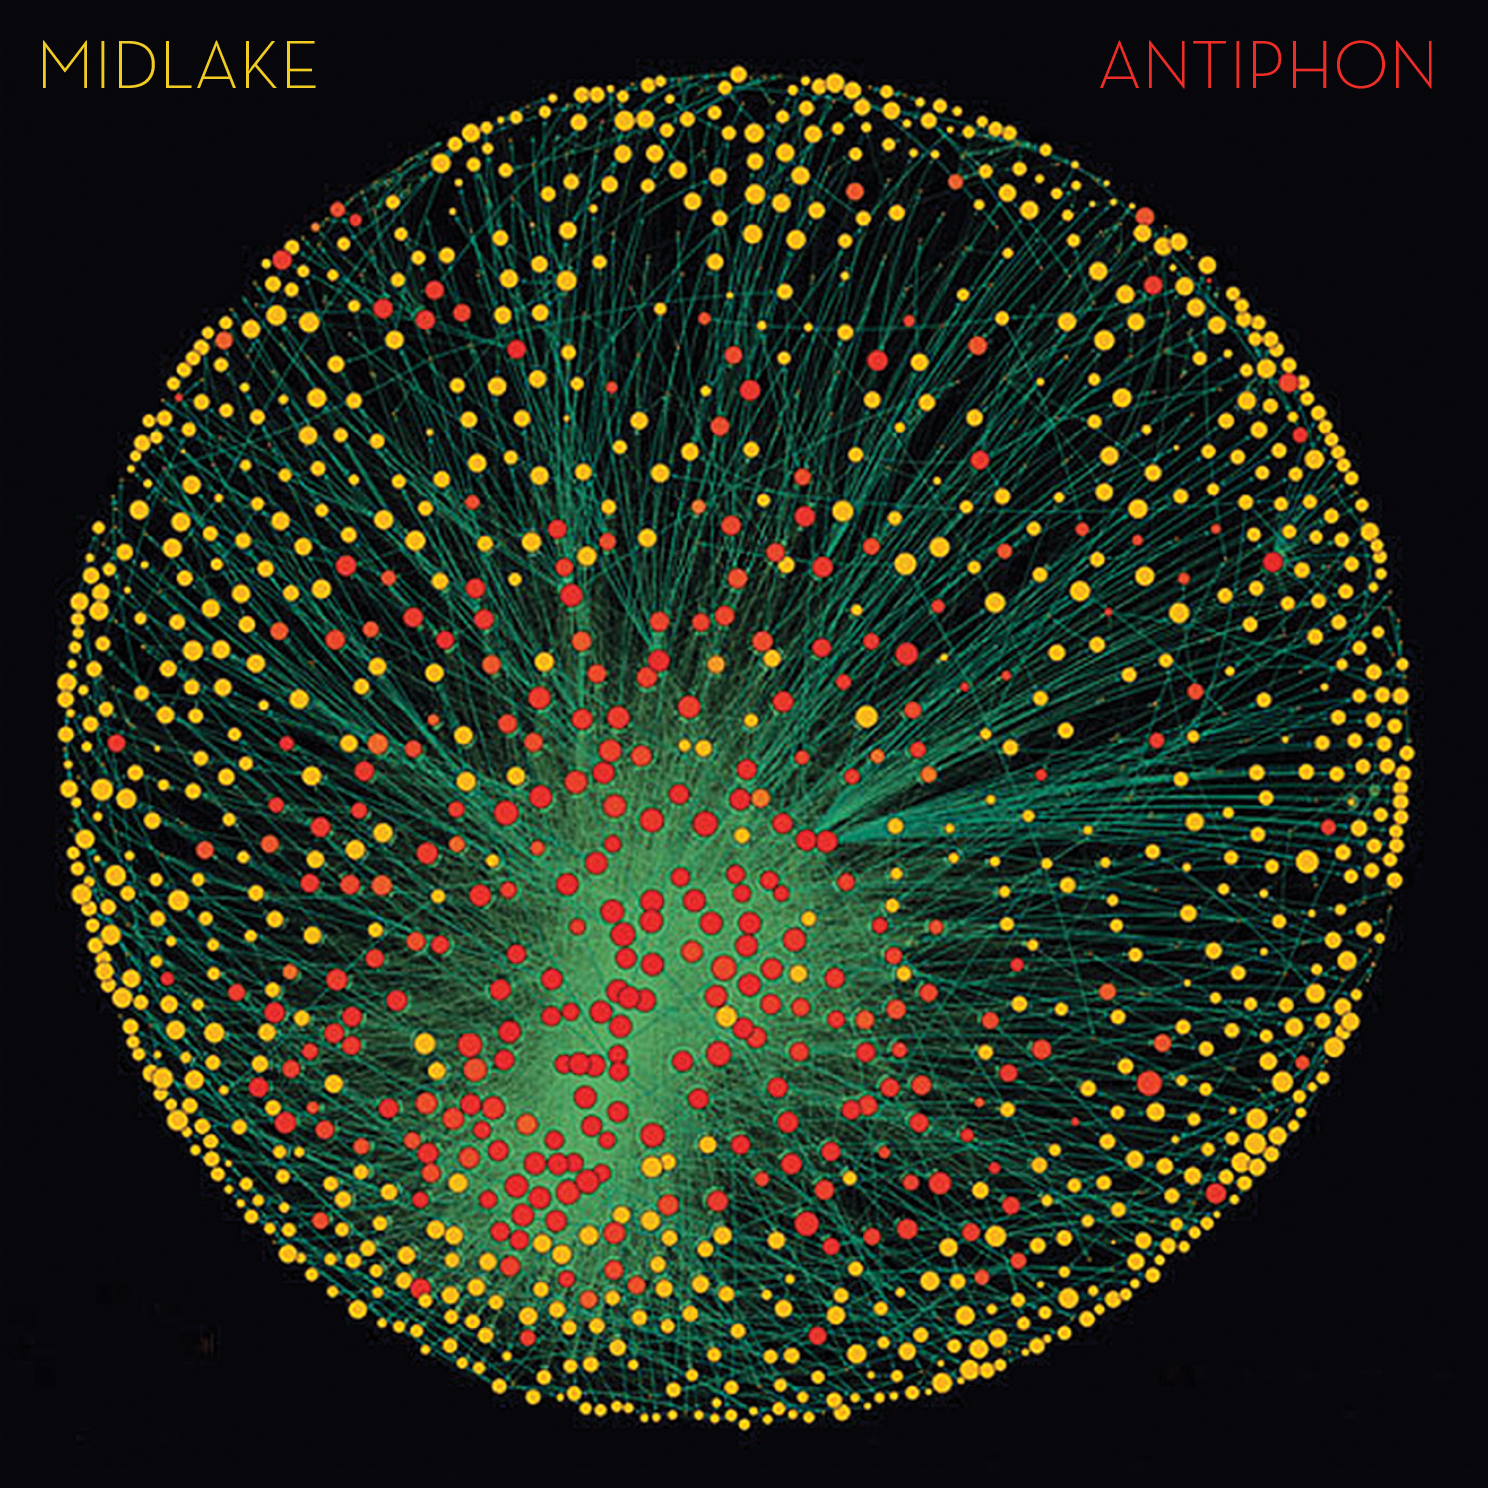 Antiphon, the new album by Midlake comes out November 5.